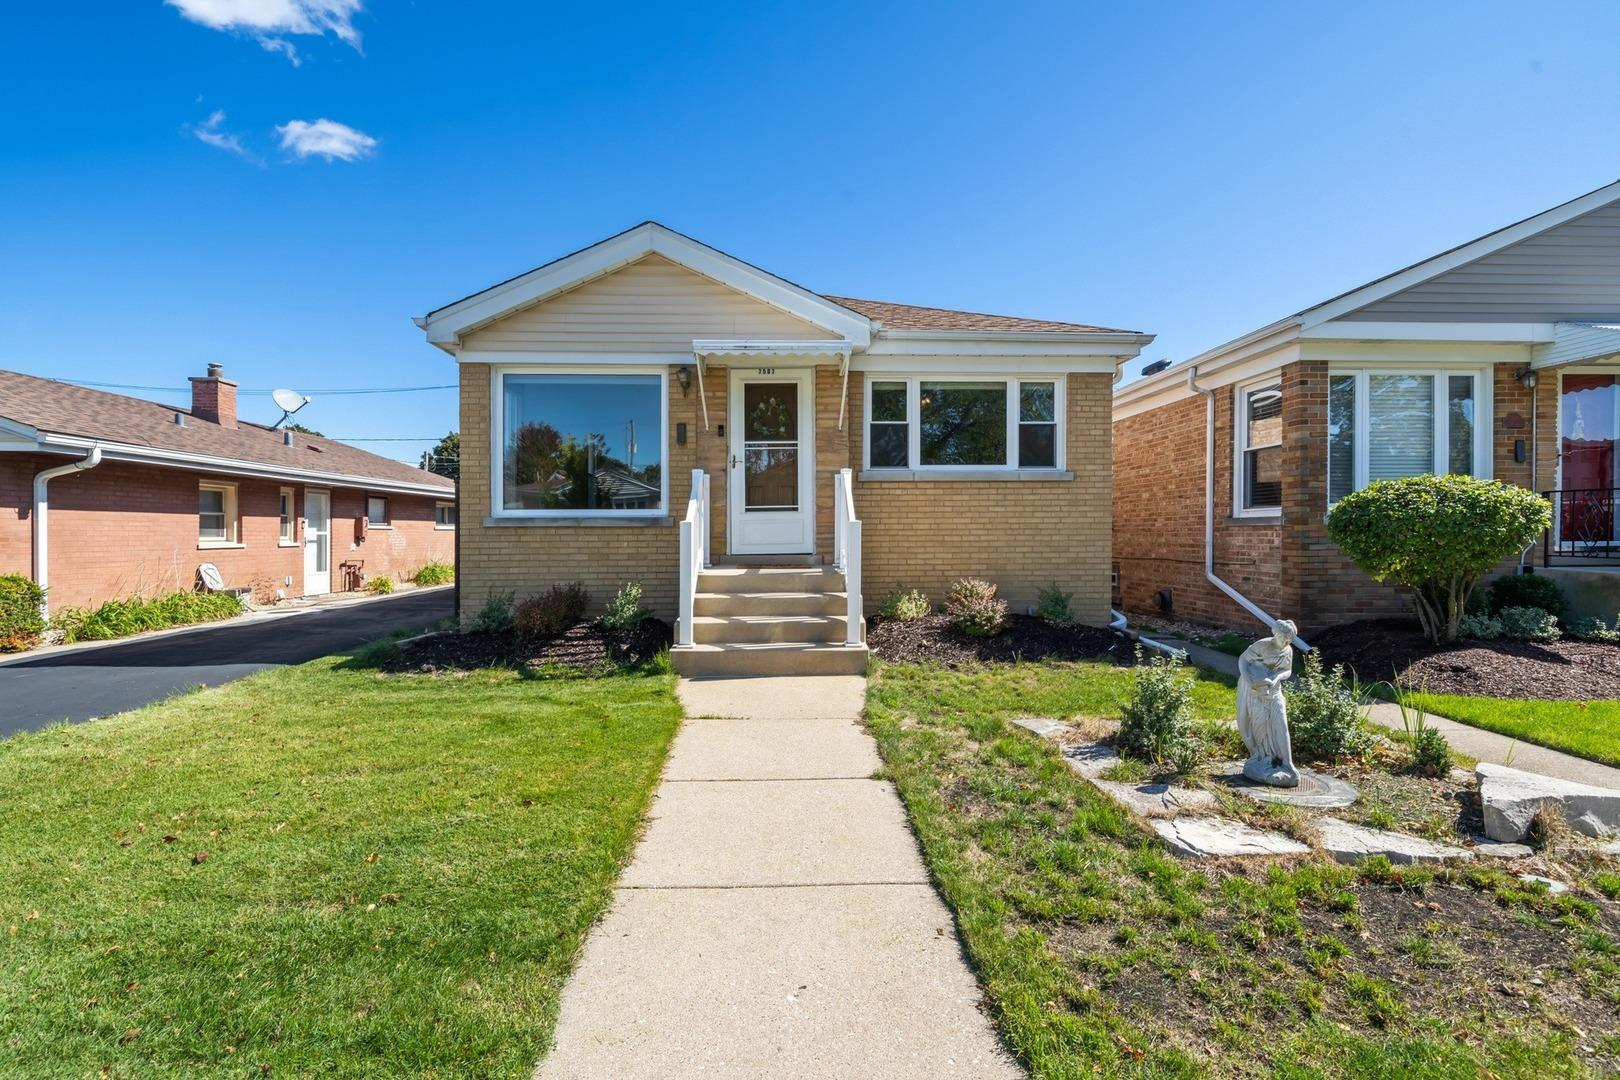 7507 N Odell Avenue, Chicago, IL 60631 - #: 10944897